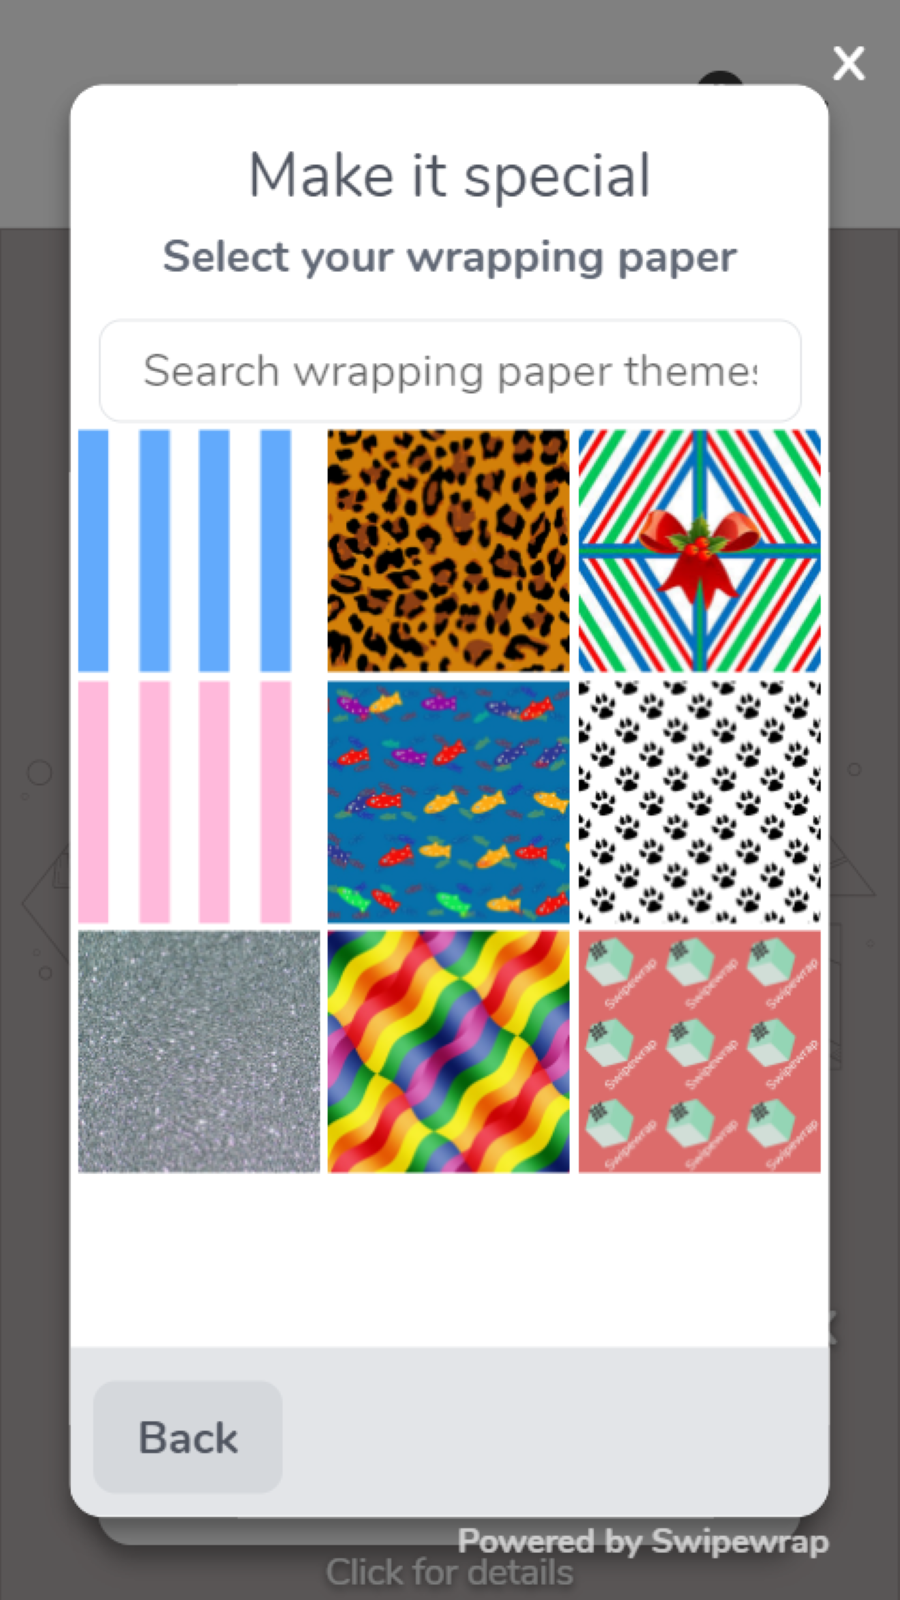 Select a wrapping paper